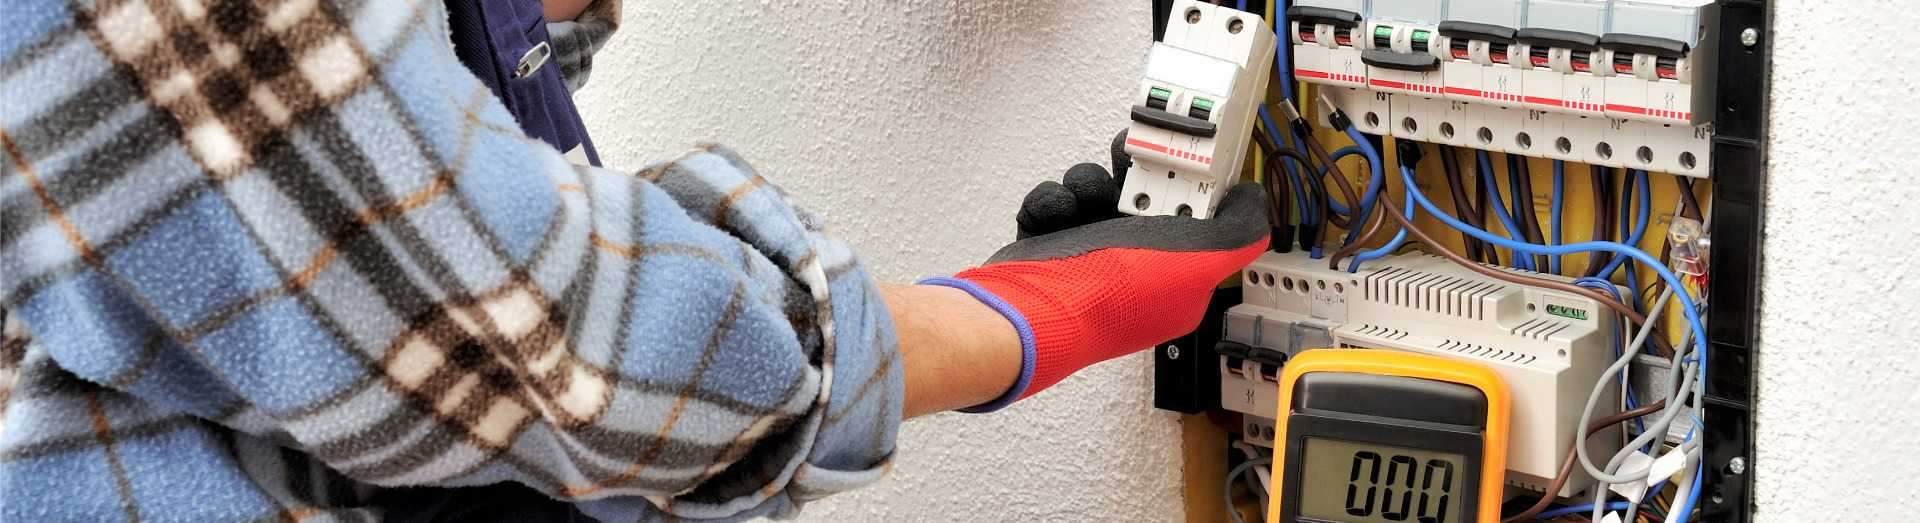 Electrical Services for Your Home